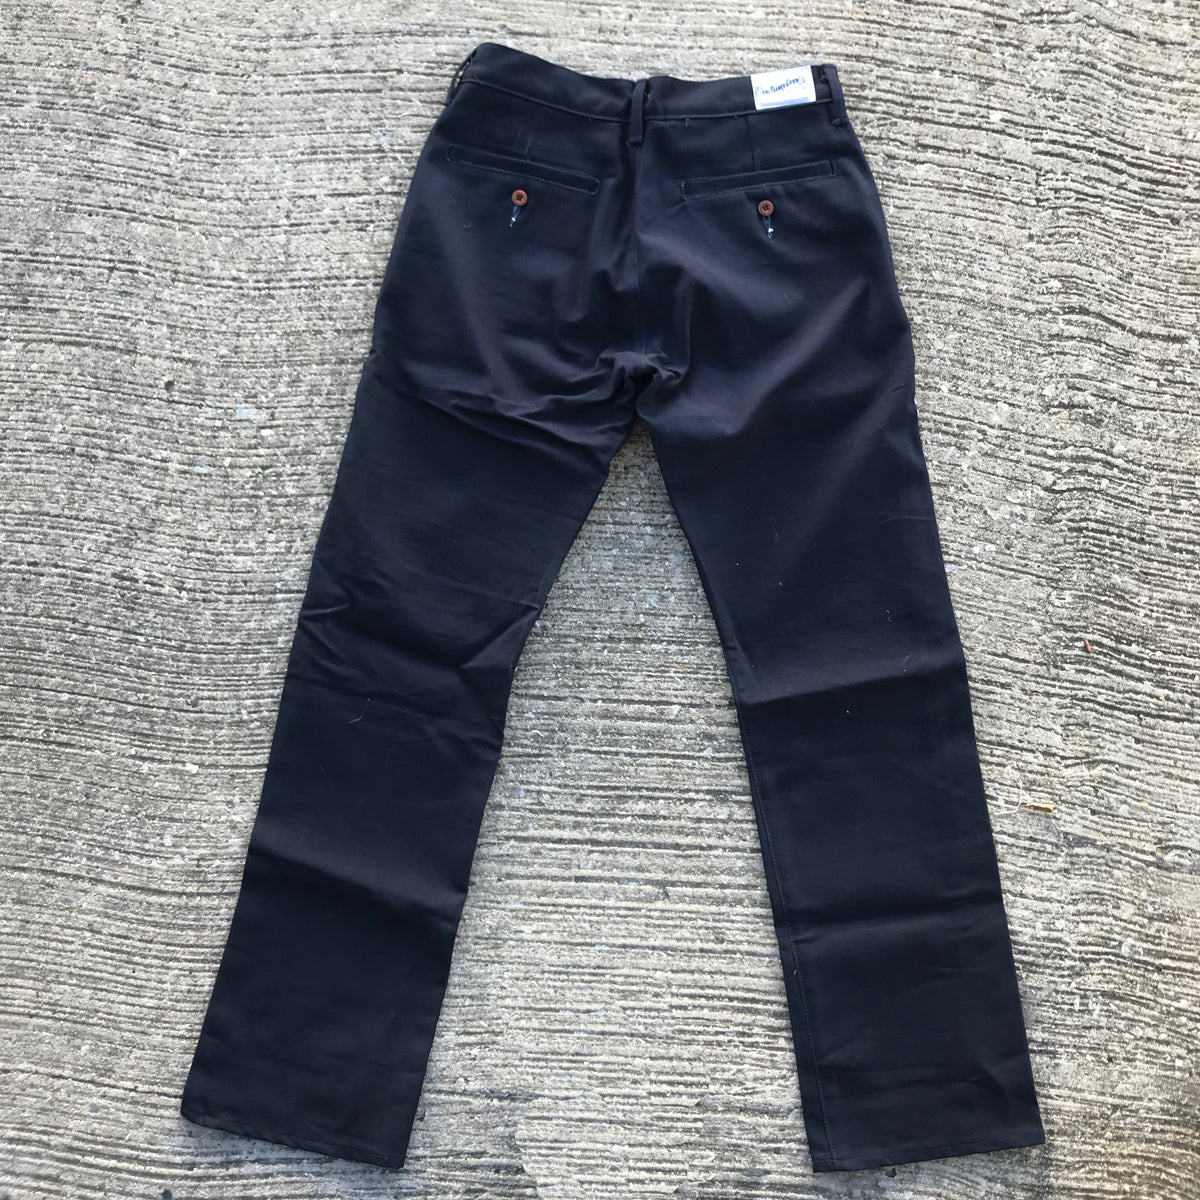 OPSTK 12oz Duck Canvas NAVY Chino 30W x 33L 905 Regular Fit